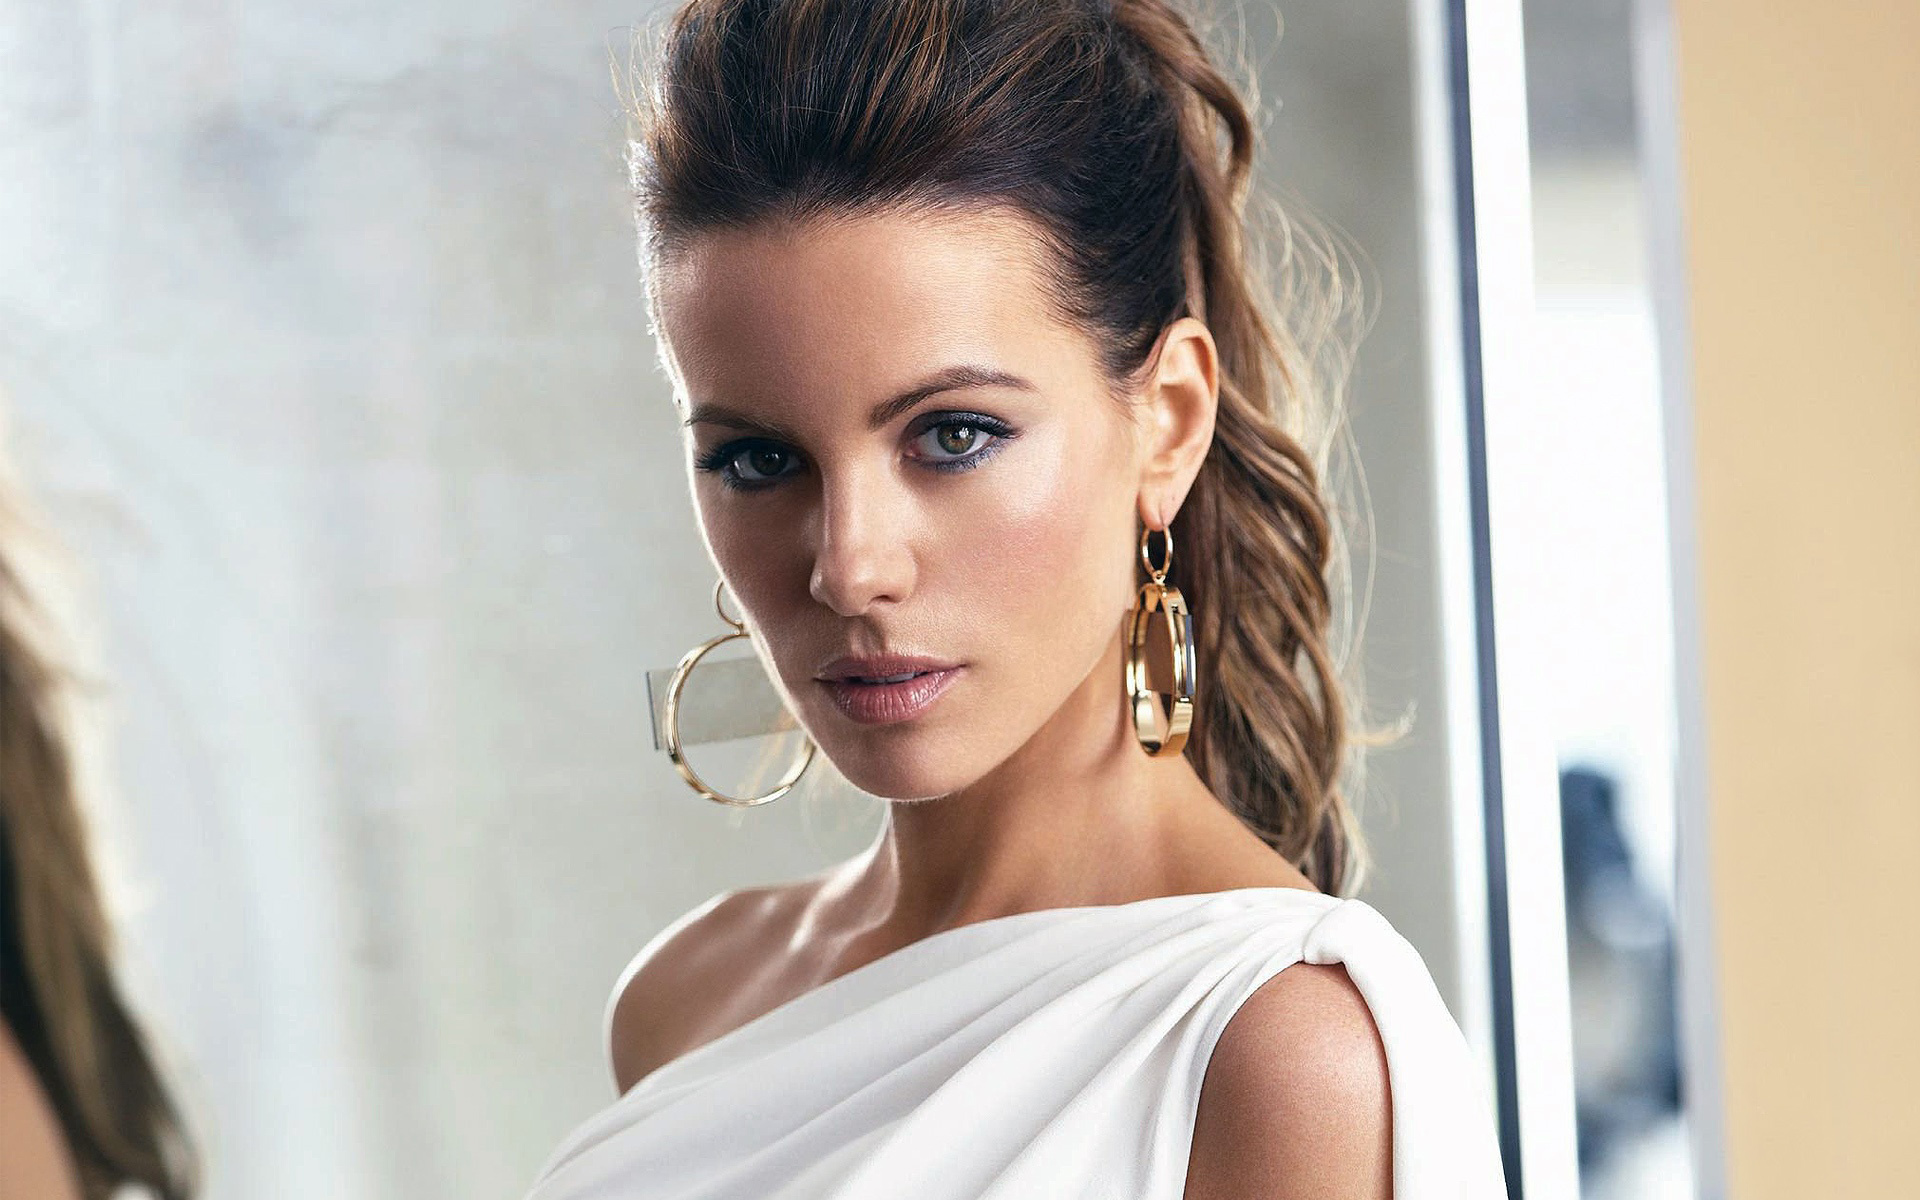 Kate Beckinsale Wallpapers - GeekShizzle | GeekShizzle: geekshizzle.com/2014/10/05/kate-beckinsale-wallpapers